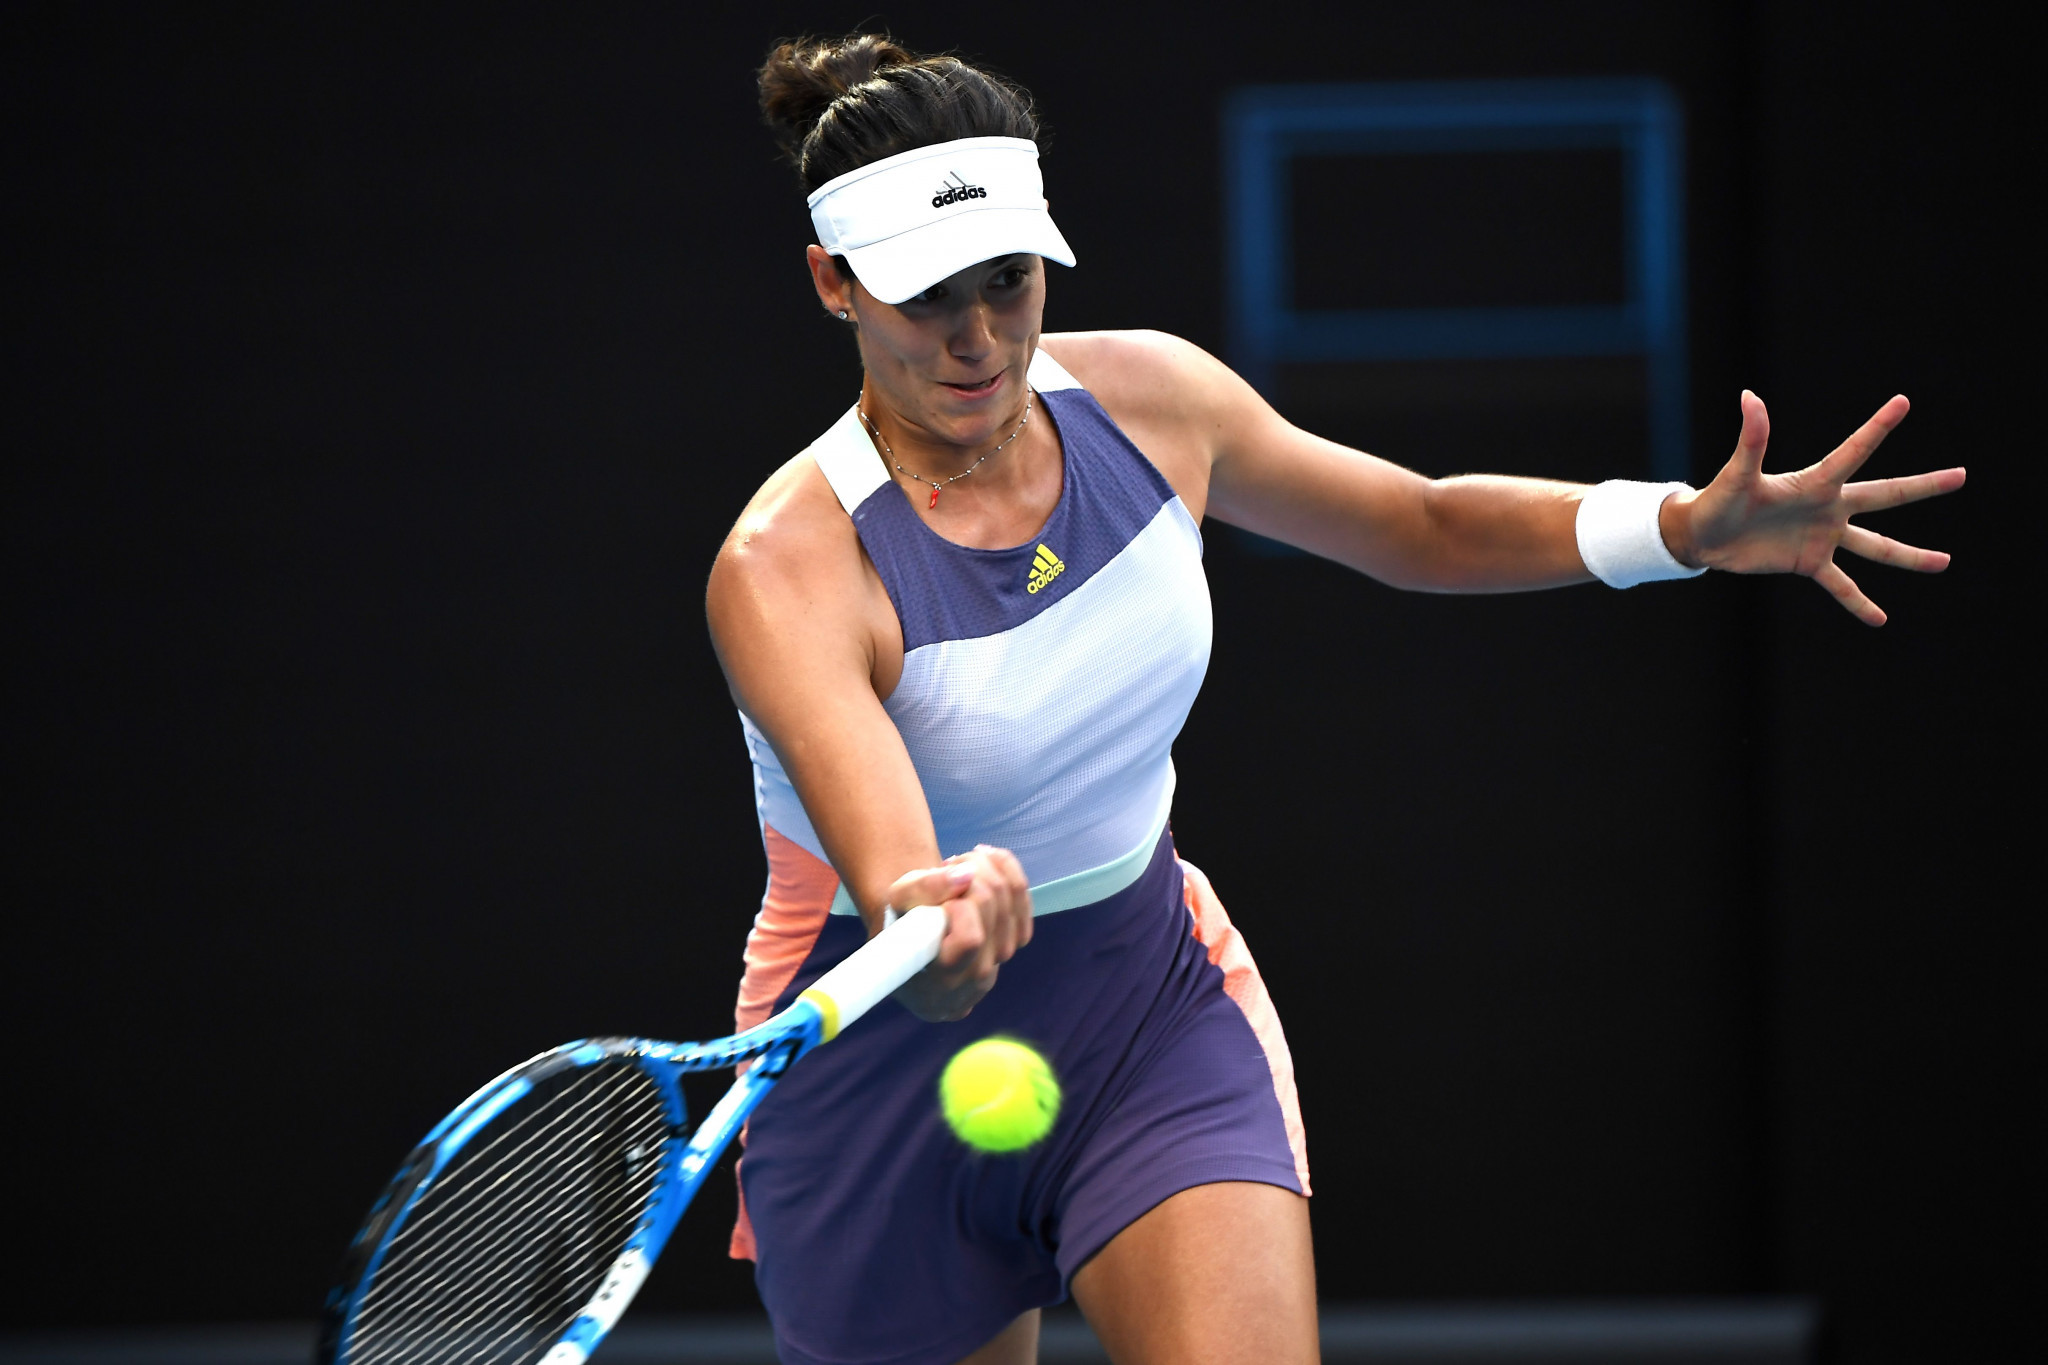 She was comfortably beaten by Garbiñe Muguruza of Spain 6-1, 6-2 ©Getty Images